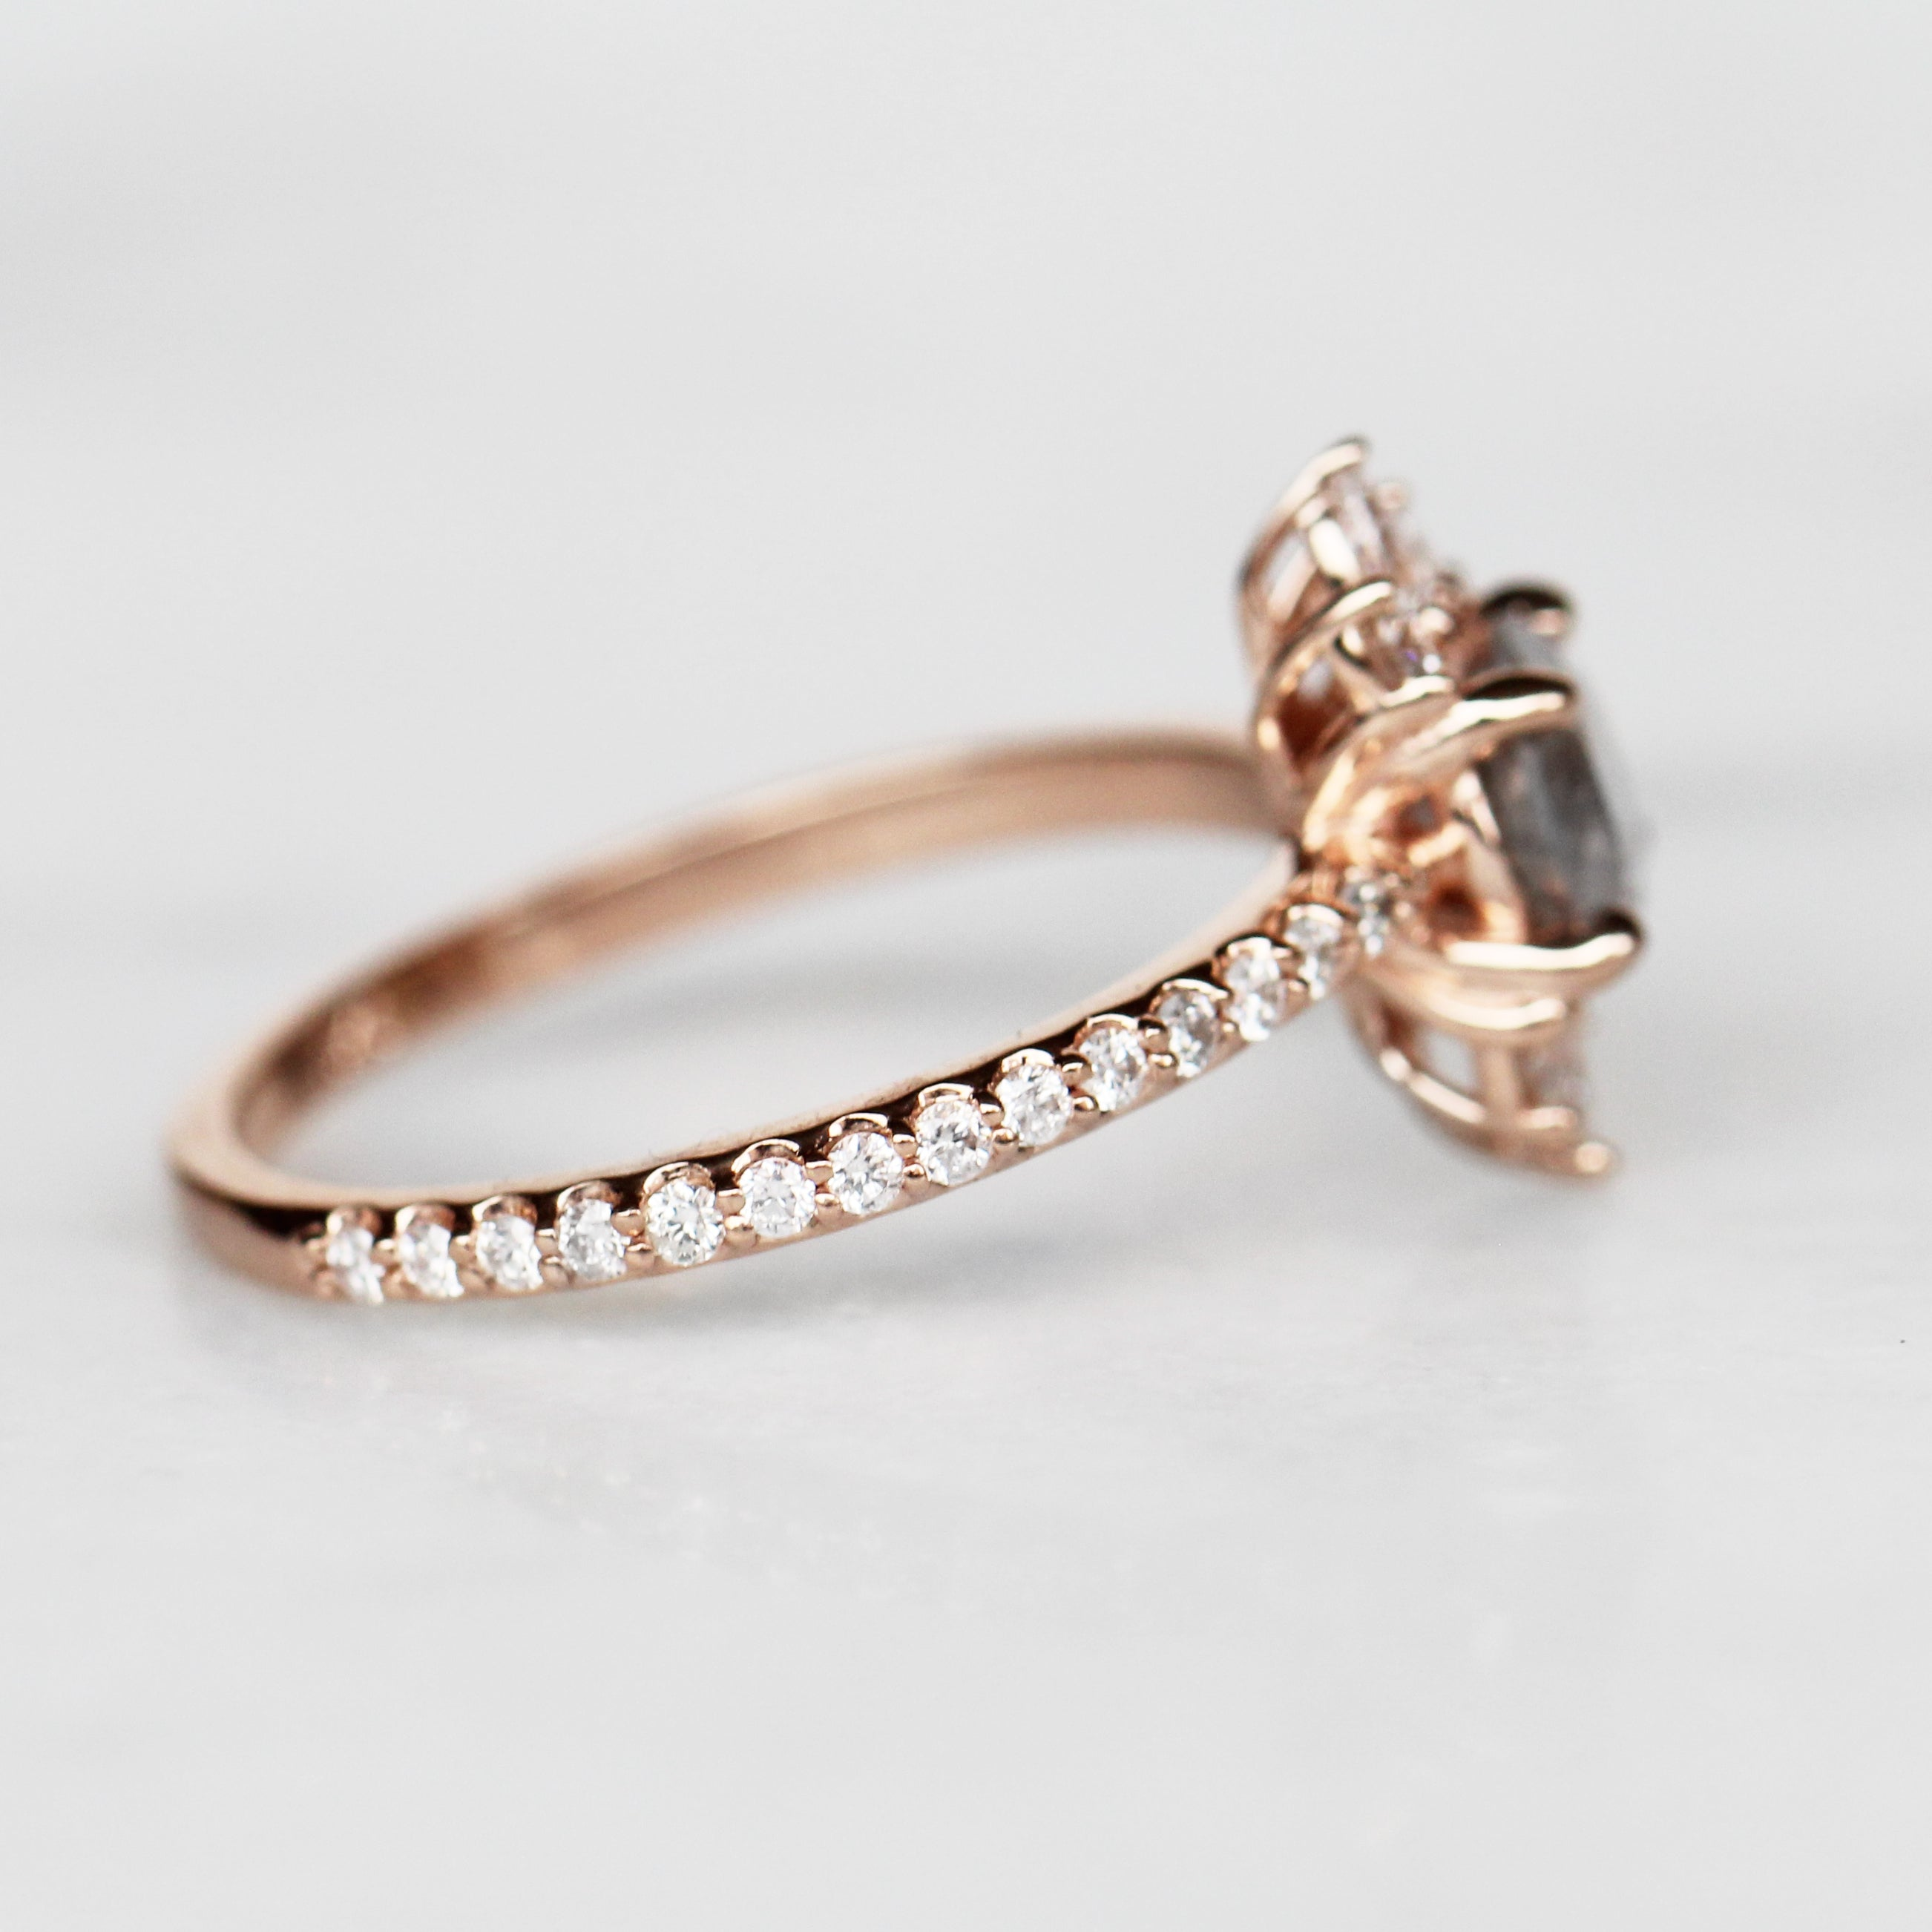 Cora Ring with .72 Carat Celestial Diamond in 10k Rose Gold - Ready to Size and Ship - Celestial Diamonds ® by Midwinter Co.